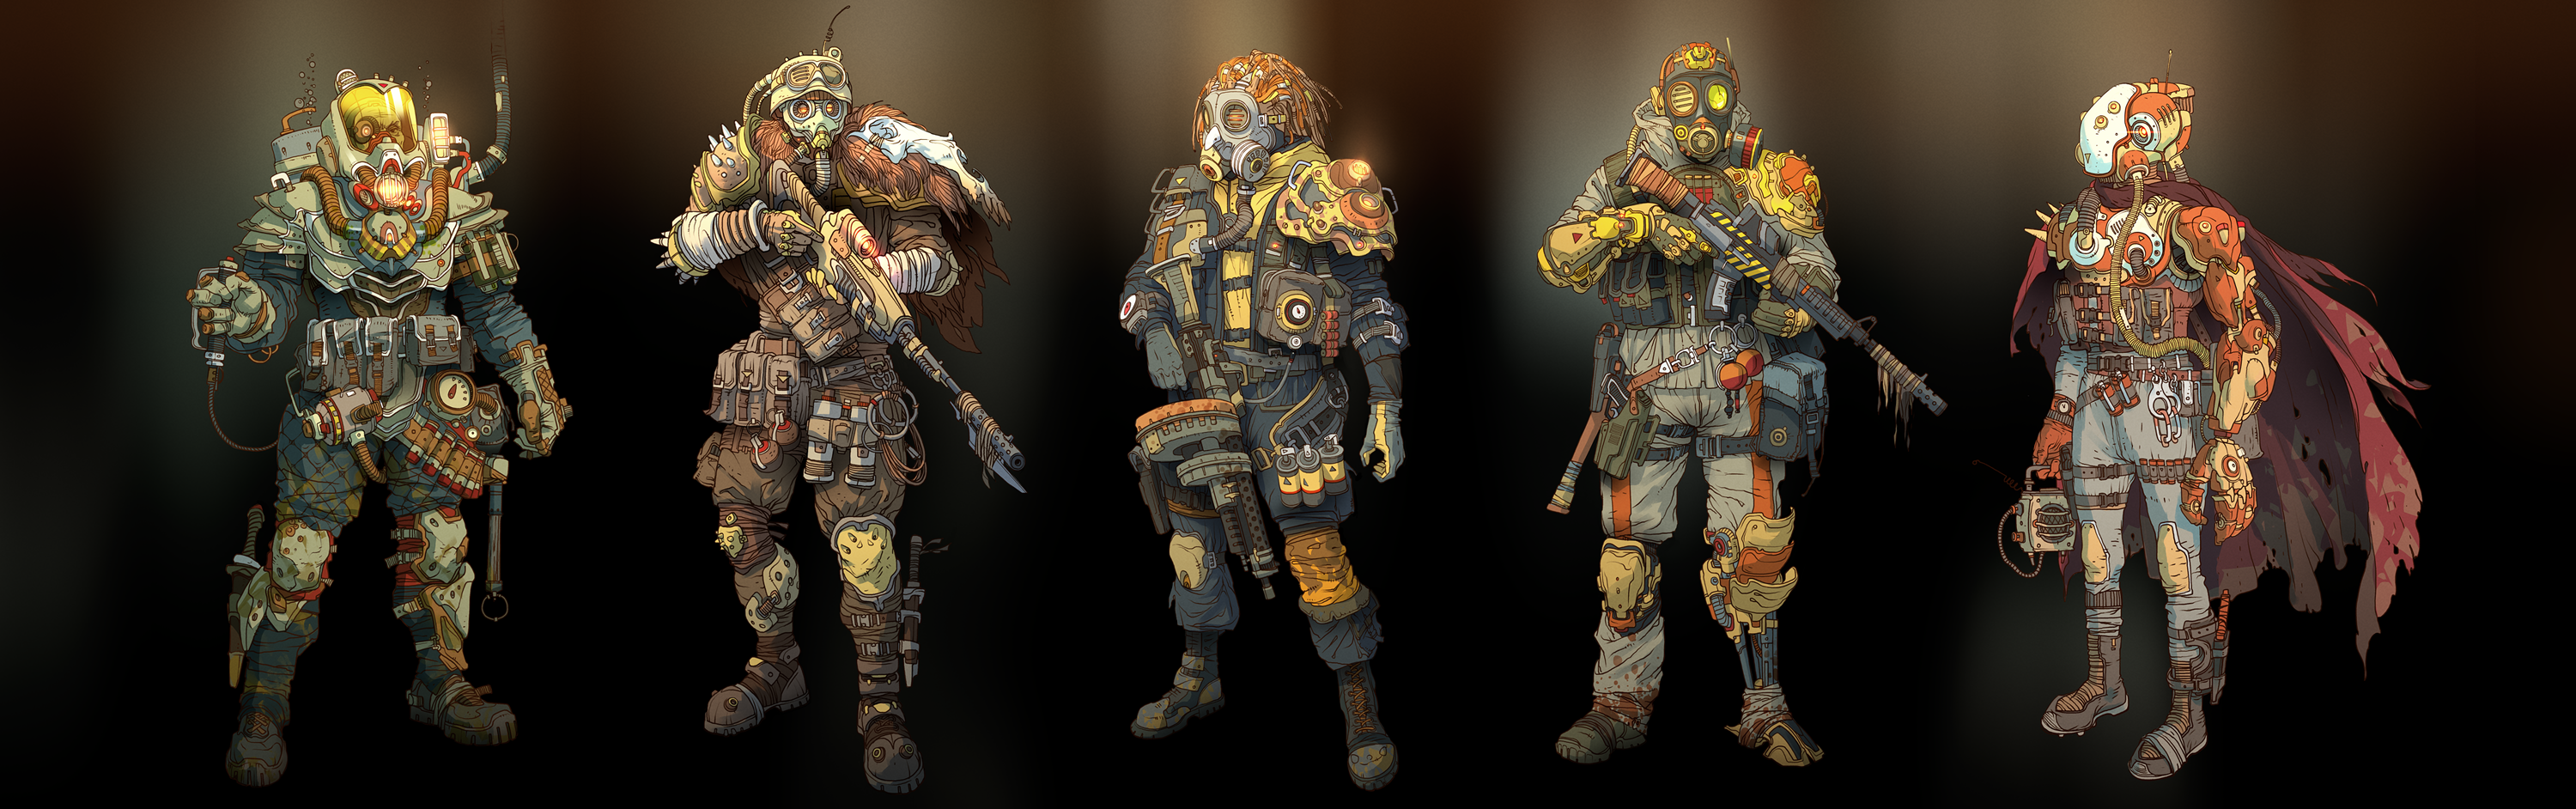 Post-apocalyptic soldiers and cyborgs by IvanLaliashvili